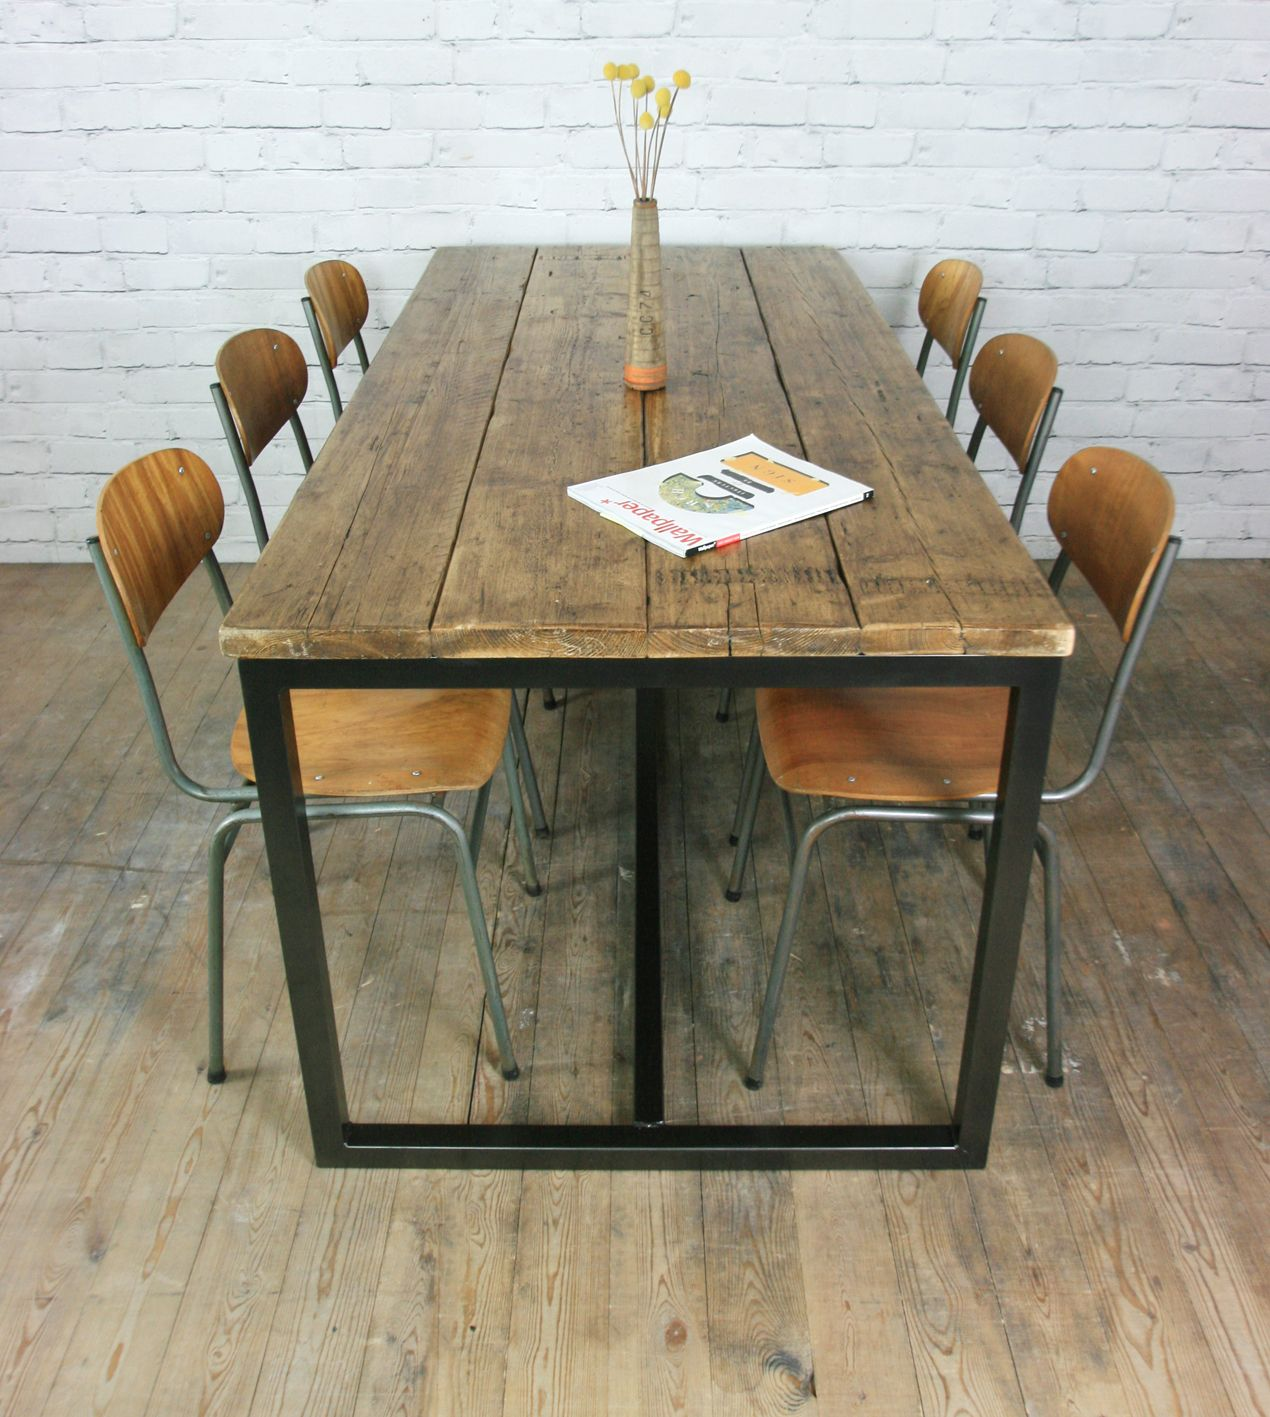 Vintage Industrial Steel Rustic Factory Loft Farm Dining Table Industrial Dining Table Farm Dining Table Rustic Industrial Dining Table